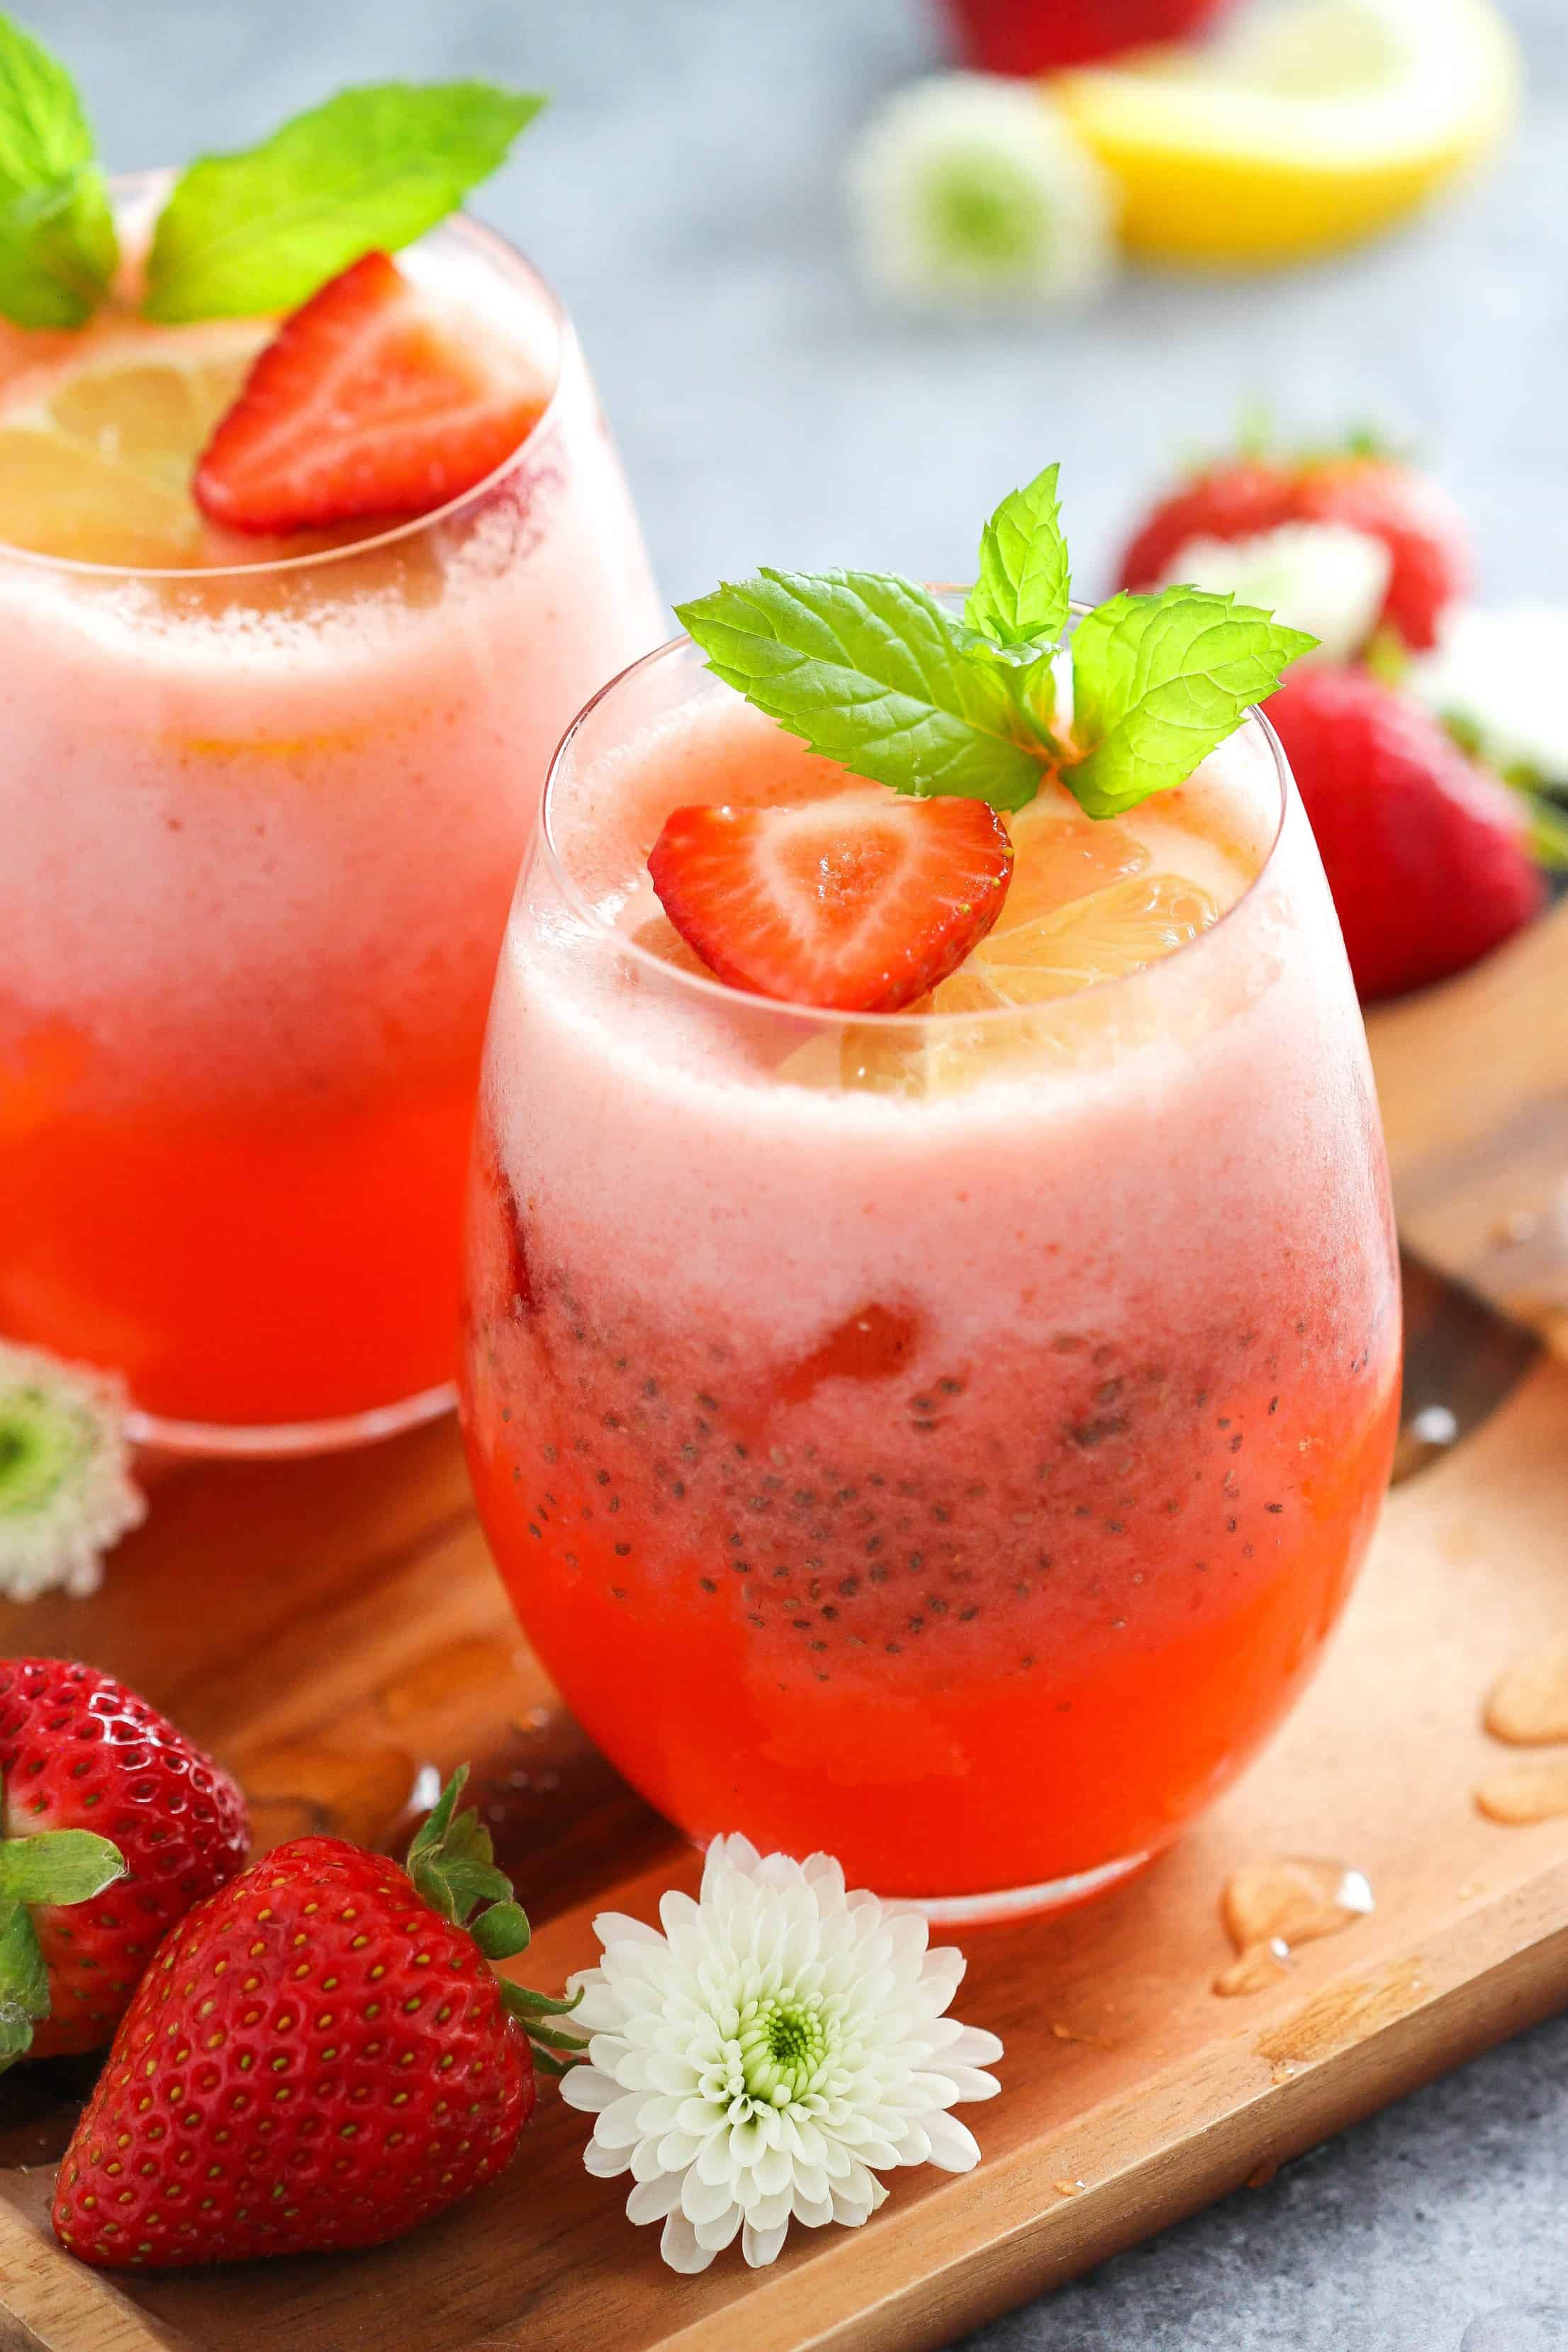 Chia Seed Drink- Strawberry Lemonade with Chia Seeds